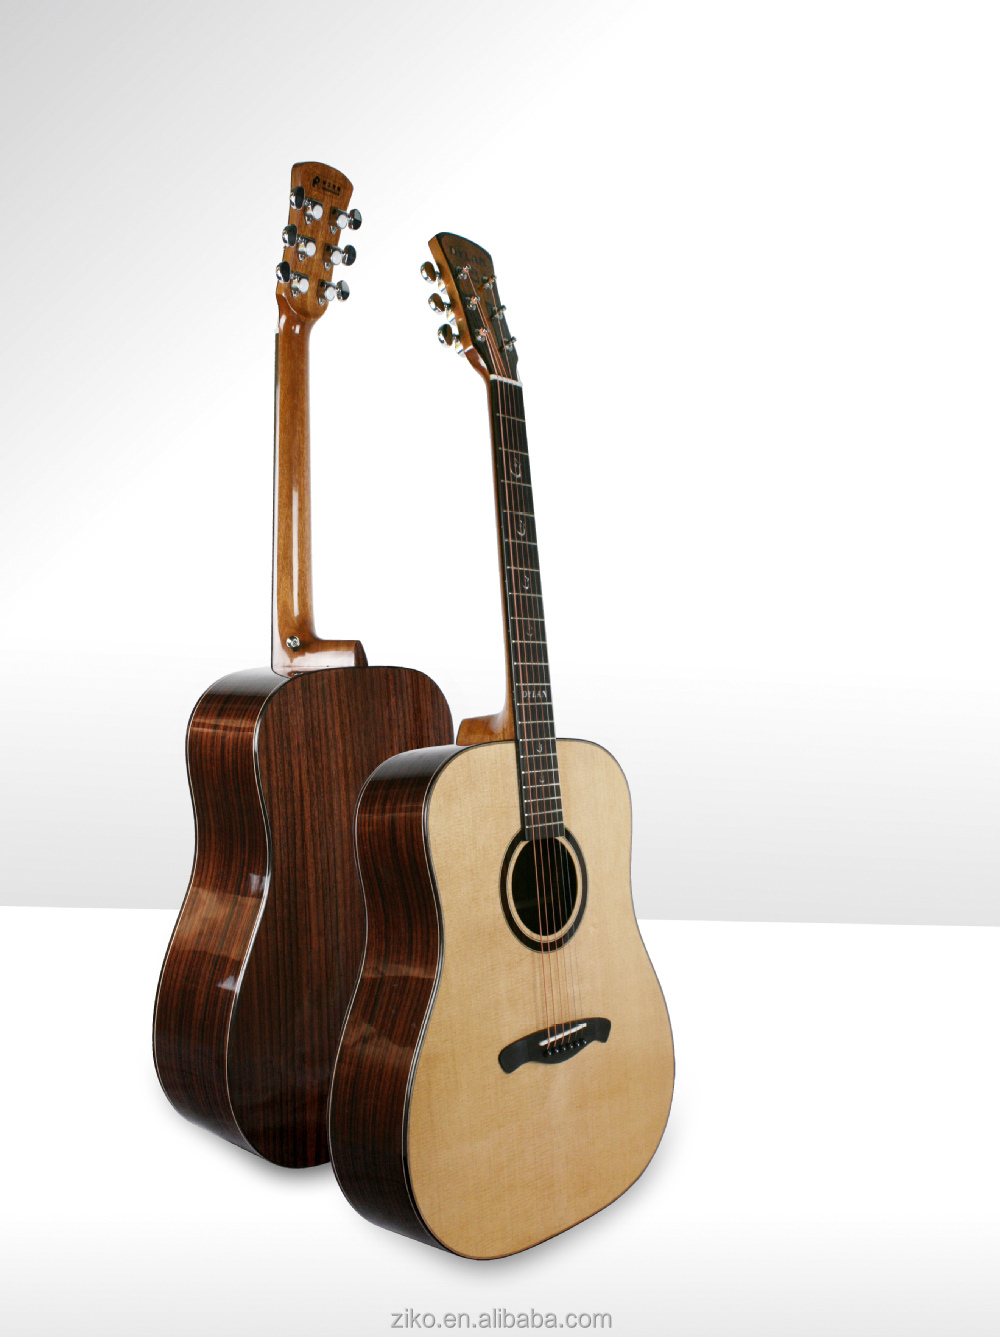 Spruce Body Material and Rosewood Back / Side Material acoustic guitar